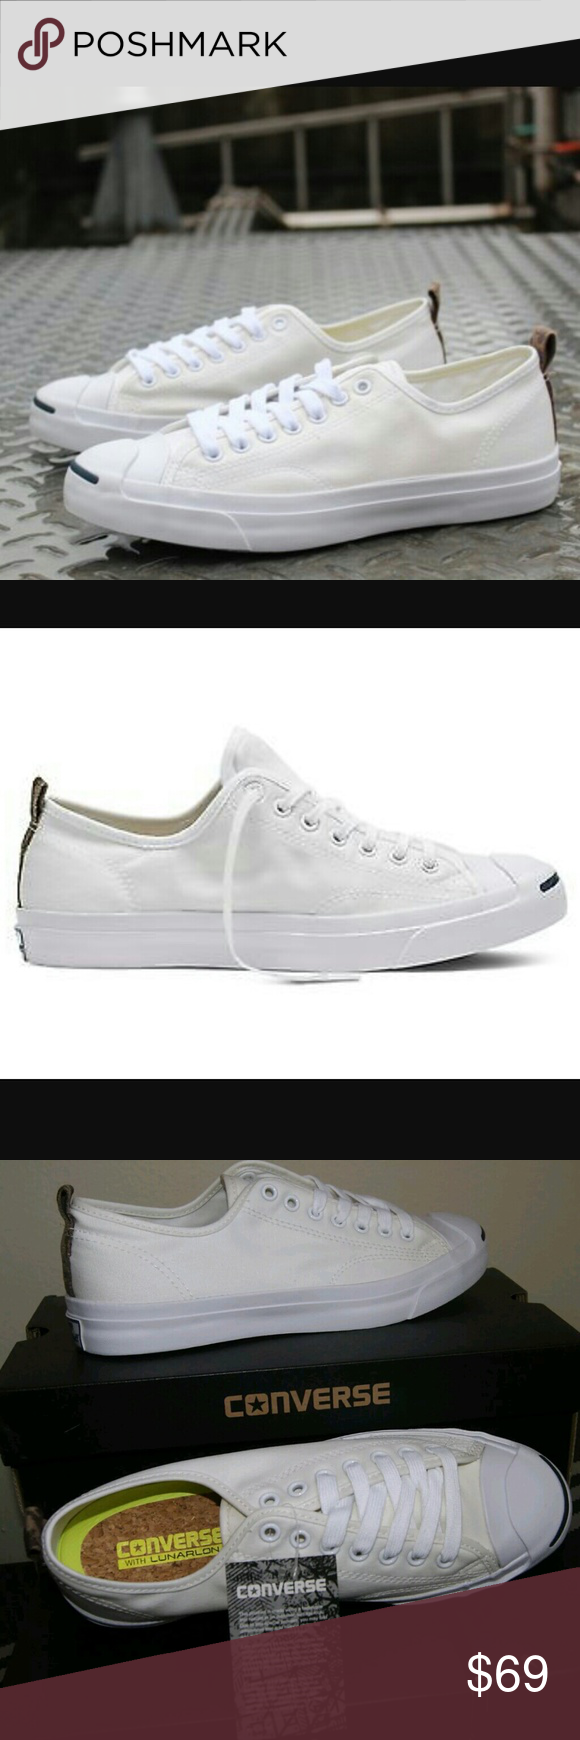 c65280ceec4b Converse Jack Purcell White Canvas Camo Lunarlon Brand New!!! Unique Converse  Jack Purcell with Camo accent on the heel and Lunarlon insoles for extra ...